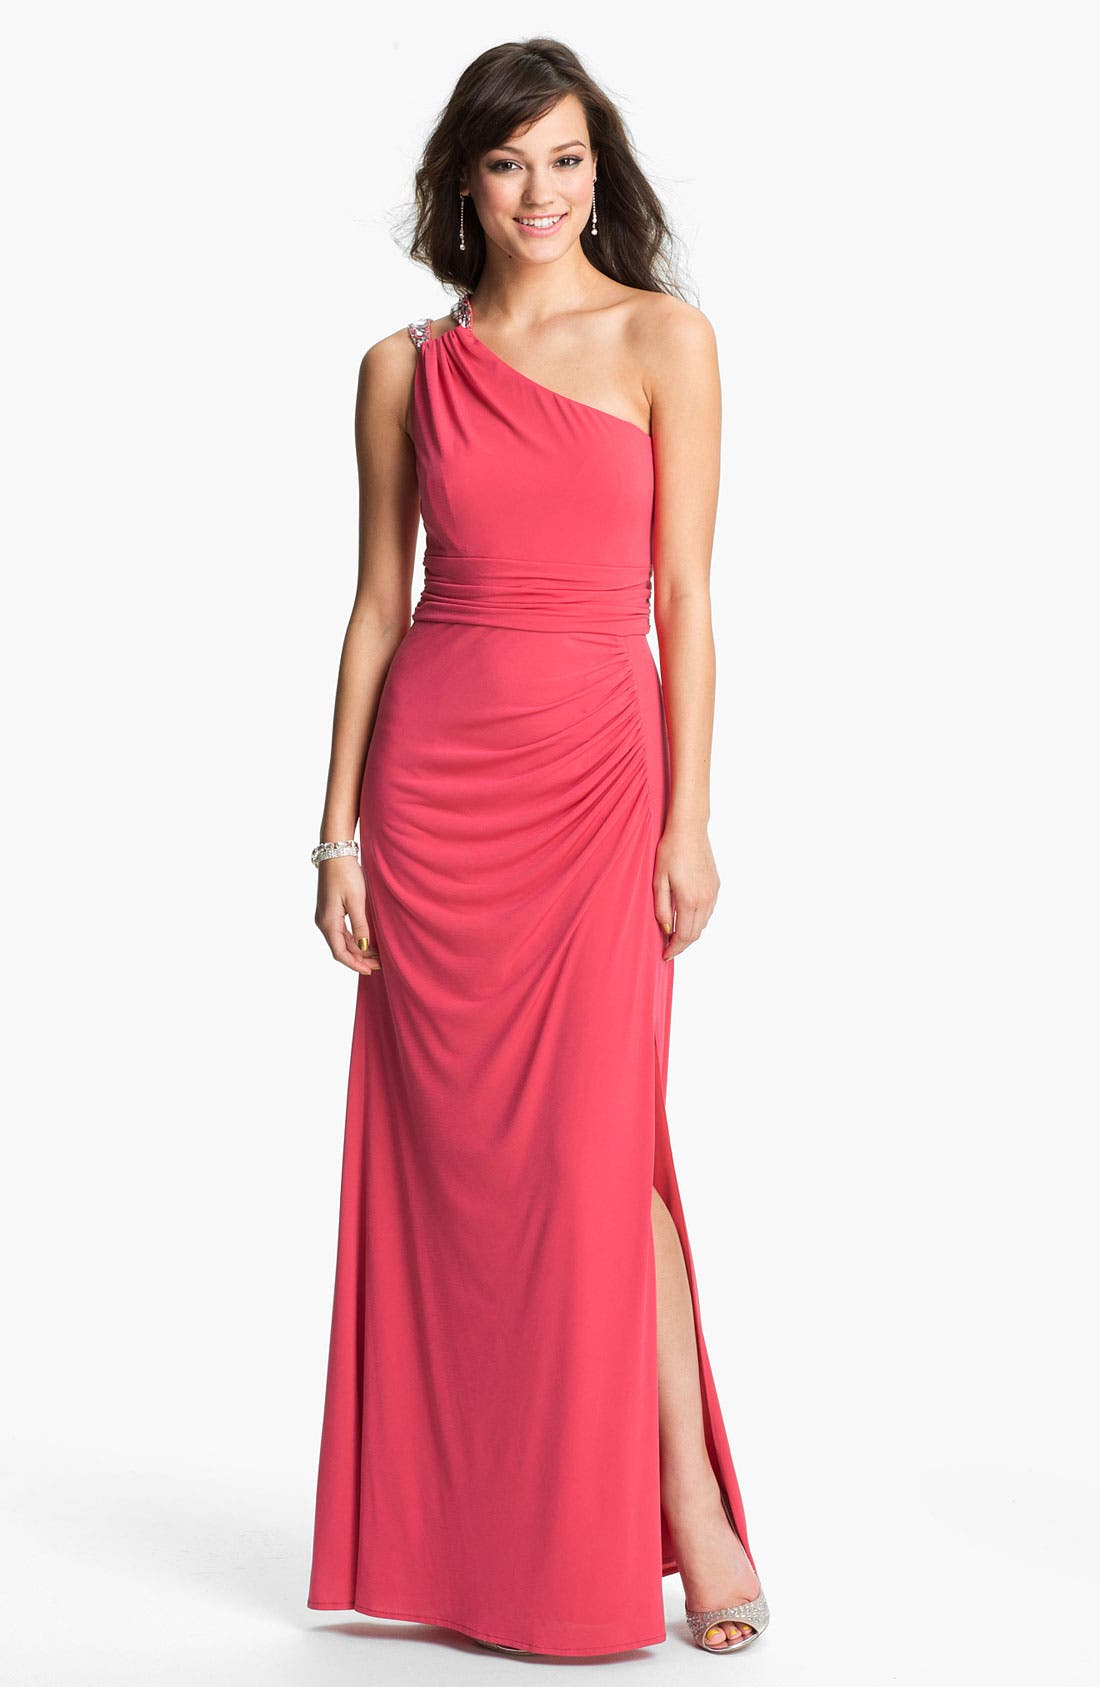 Main Image - Hailey by Adrianna Papell Embellished One Shoulder Gown (Online Exclusive)